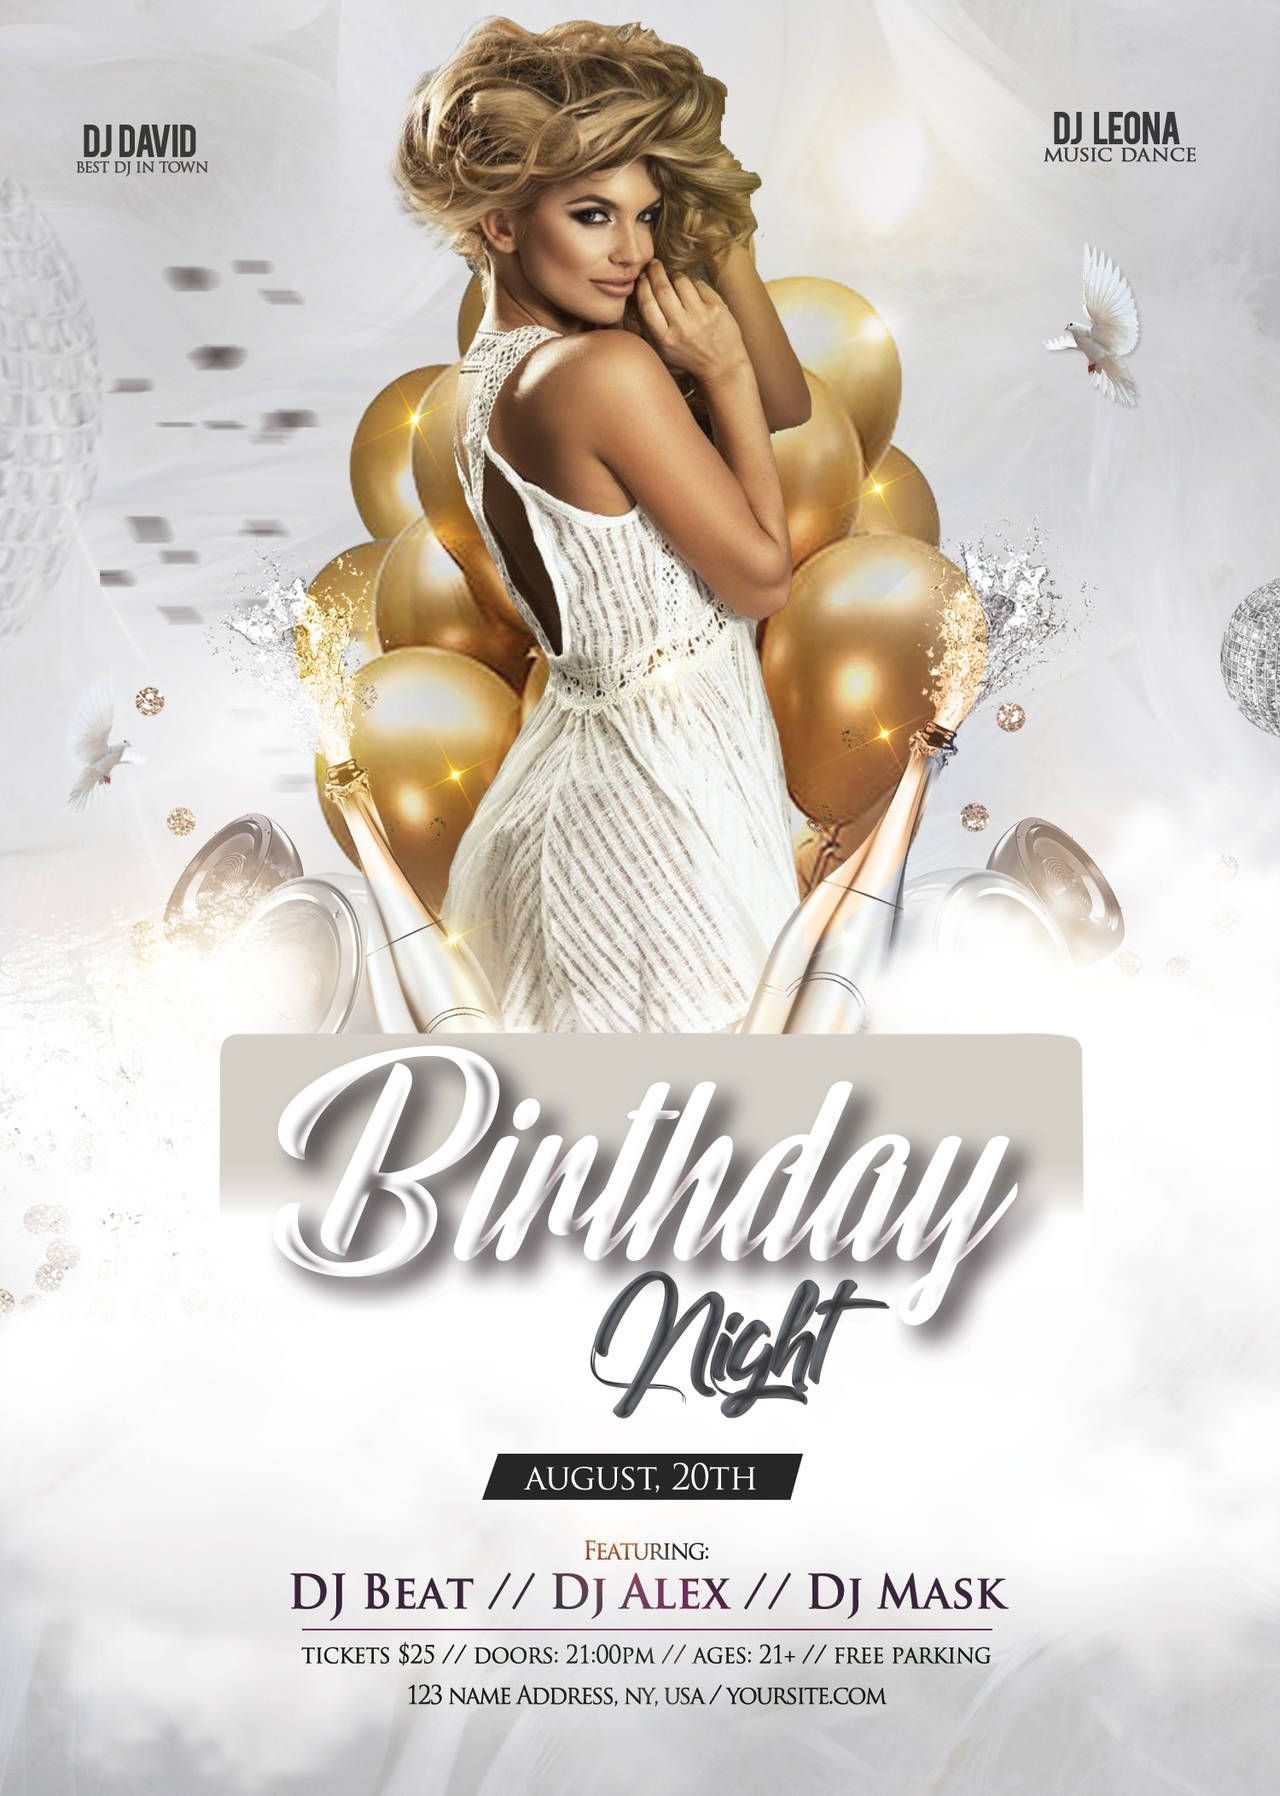 005 Unusual Birthday Flyer Template Psd Free Download High Definition Full